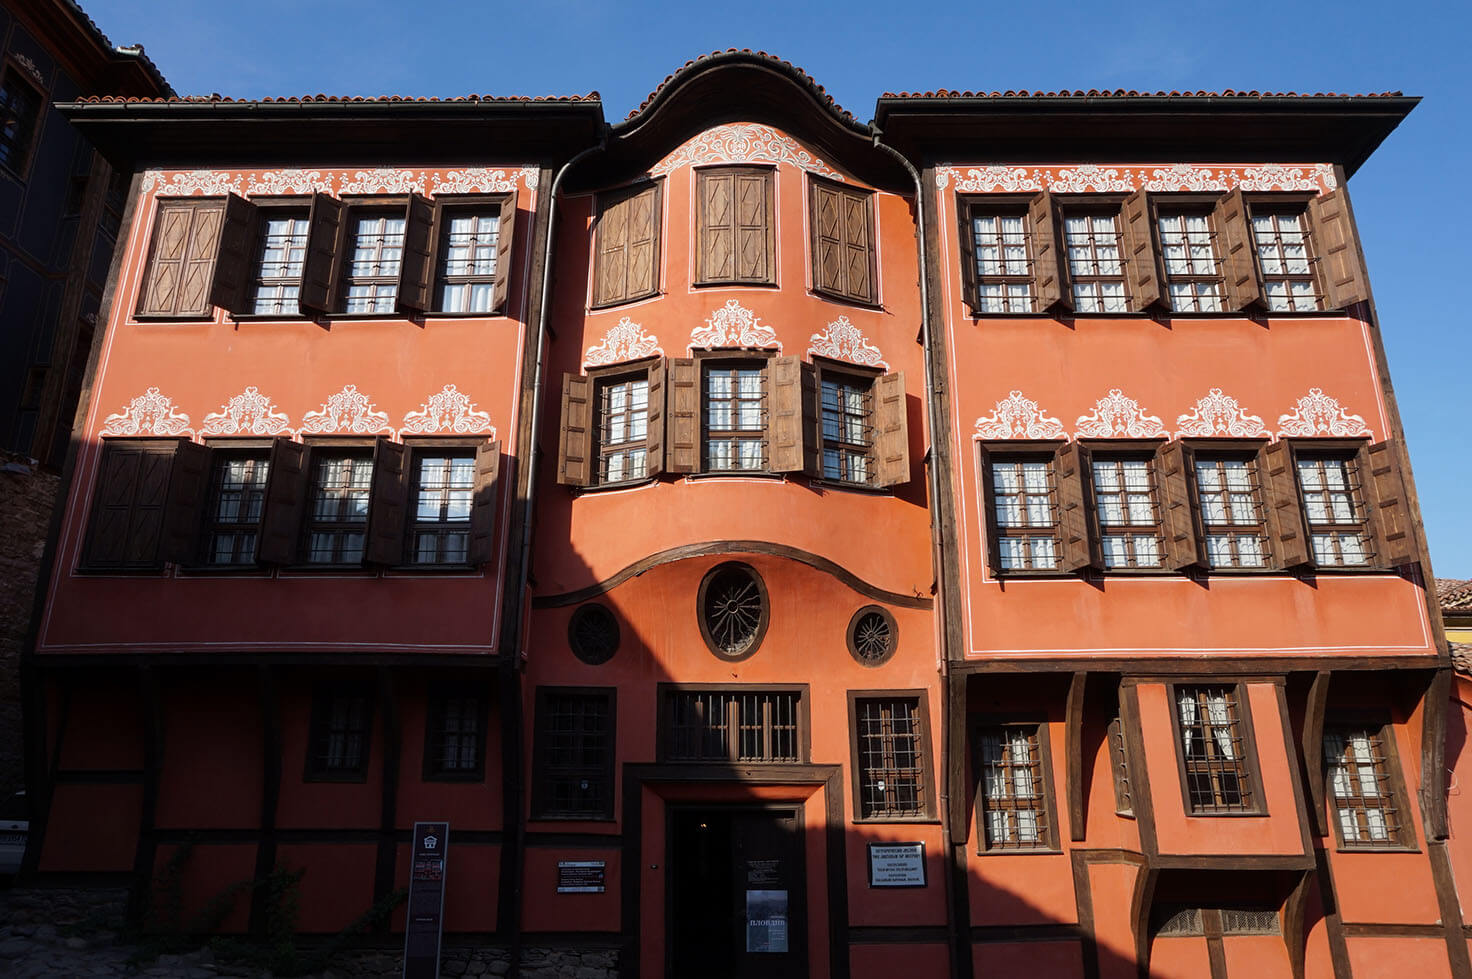 Plovdiv Old Town - revival house